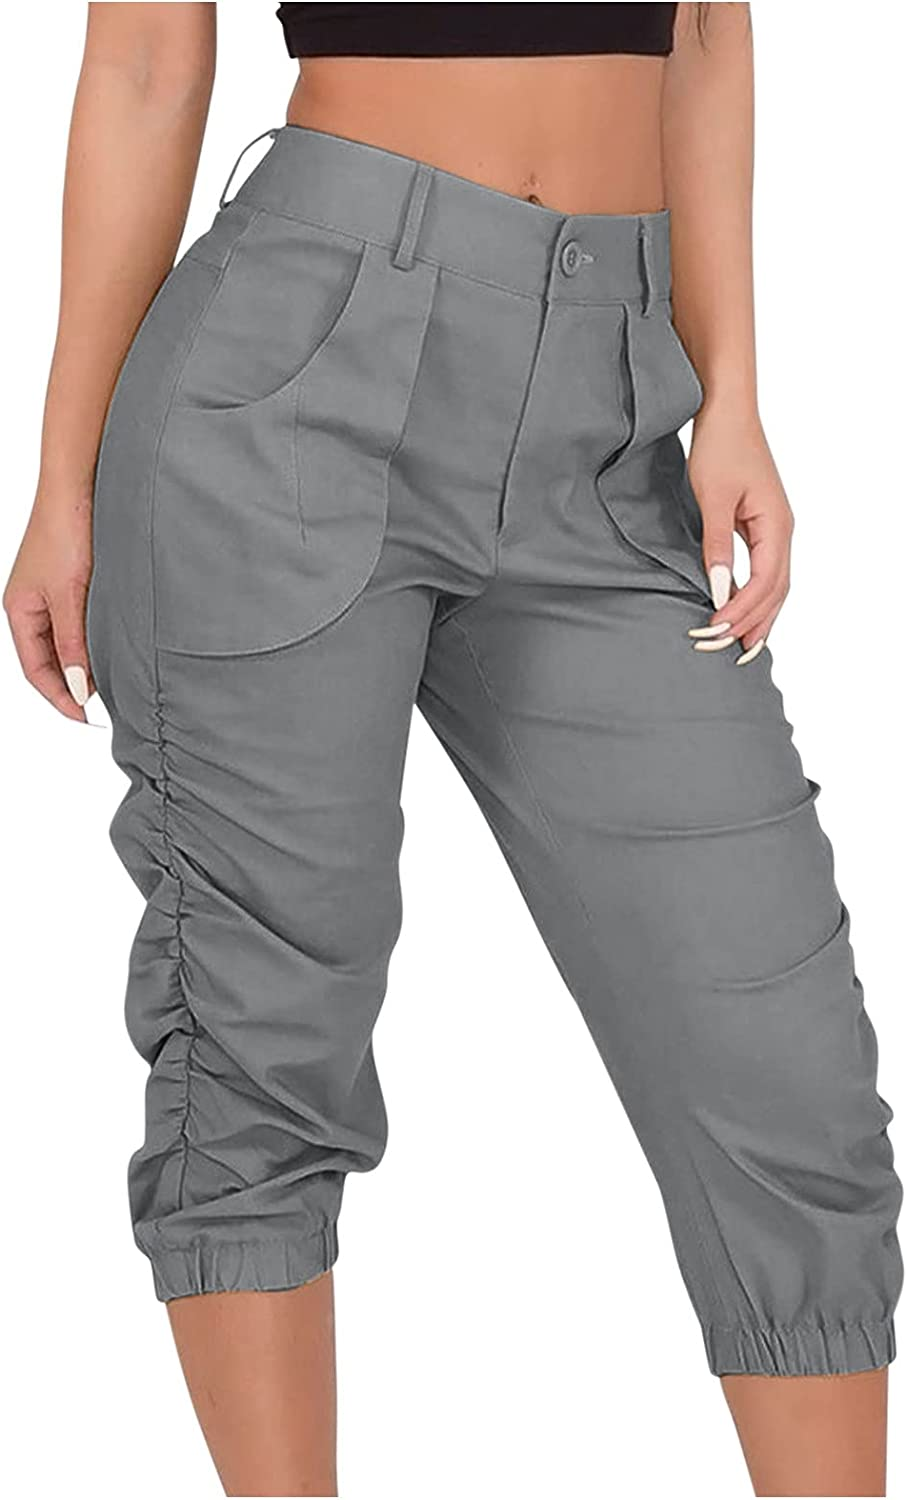 Kcocoo Women's Casual High Waist Cargo Pants Solid Color Ruched Pull On Capri Pants Harem Trousers Cropped Pants with Pockets